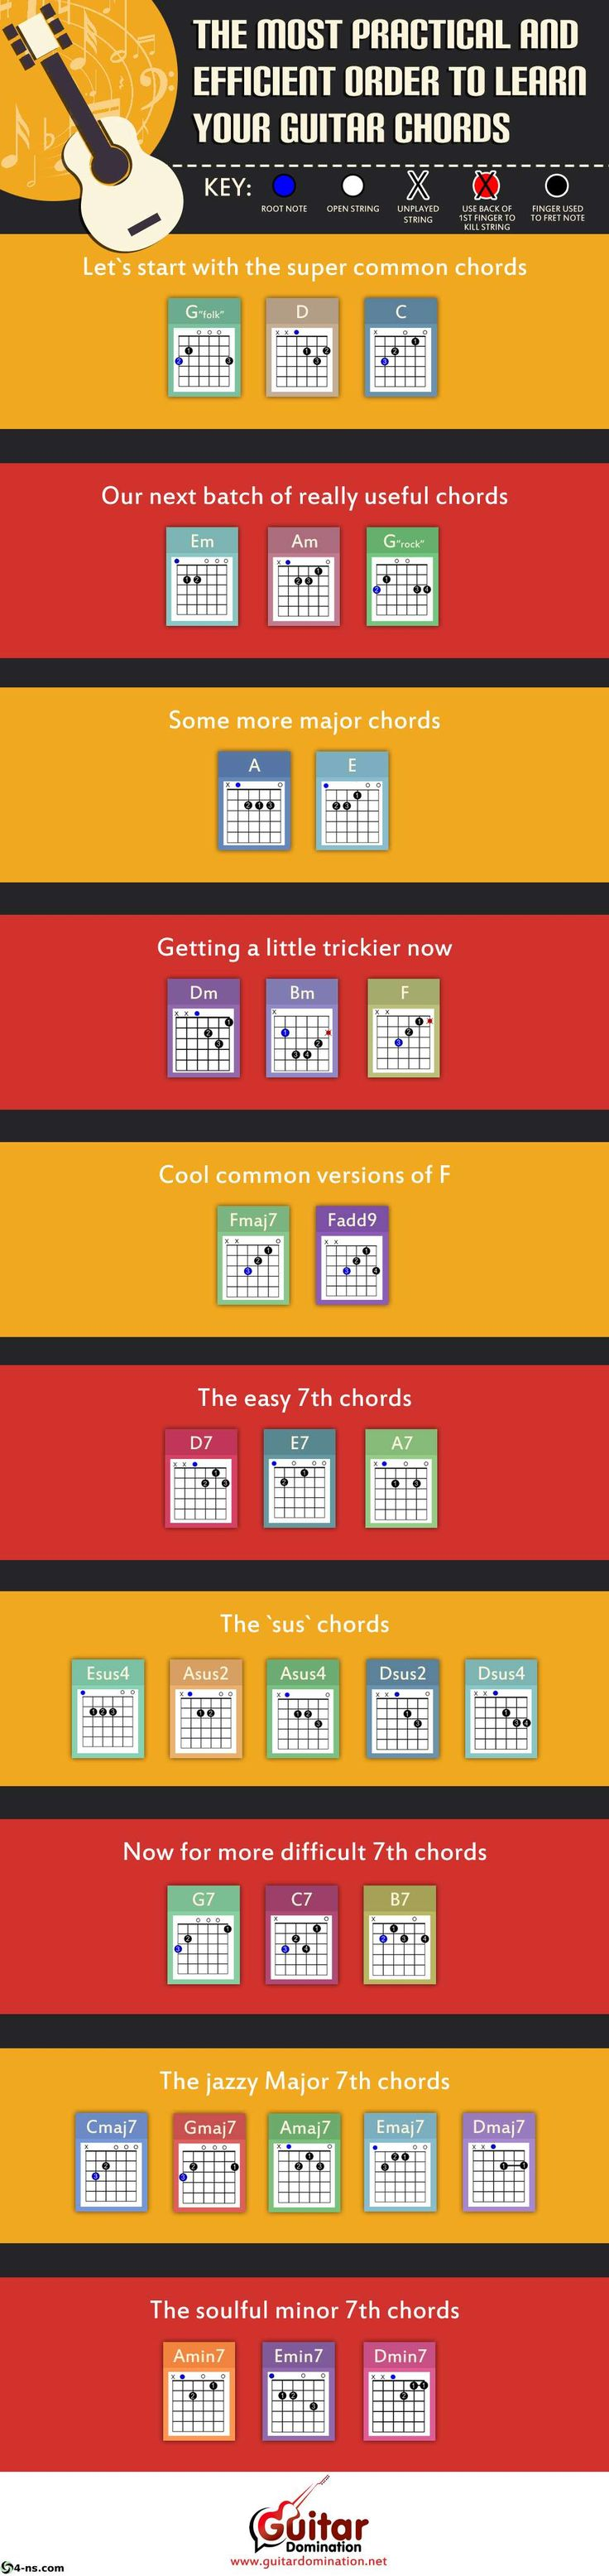 The Chords Every Guitarist Should Know: 32 Crucial Chord Shapes - 4-ns - For nothing strictly